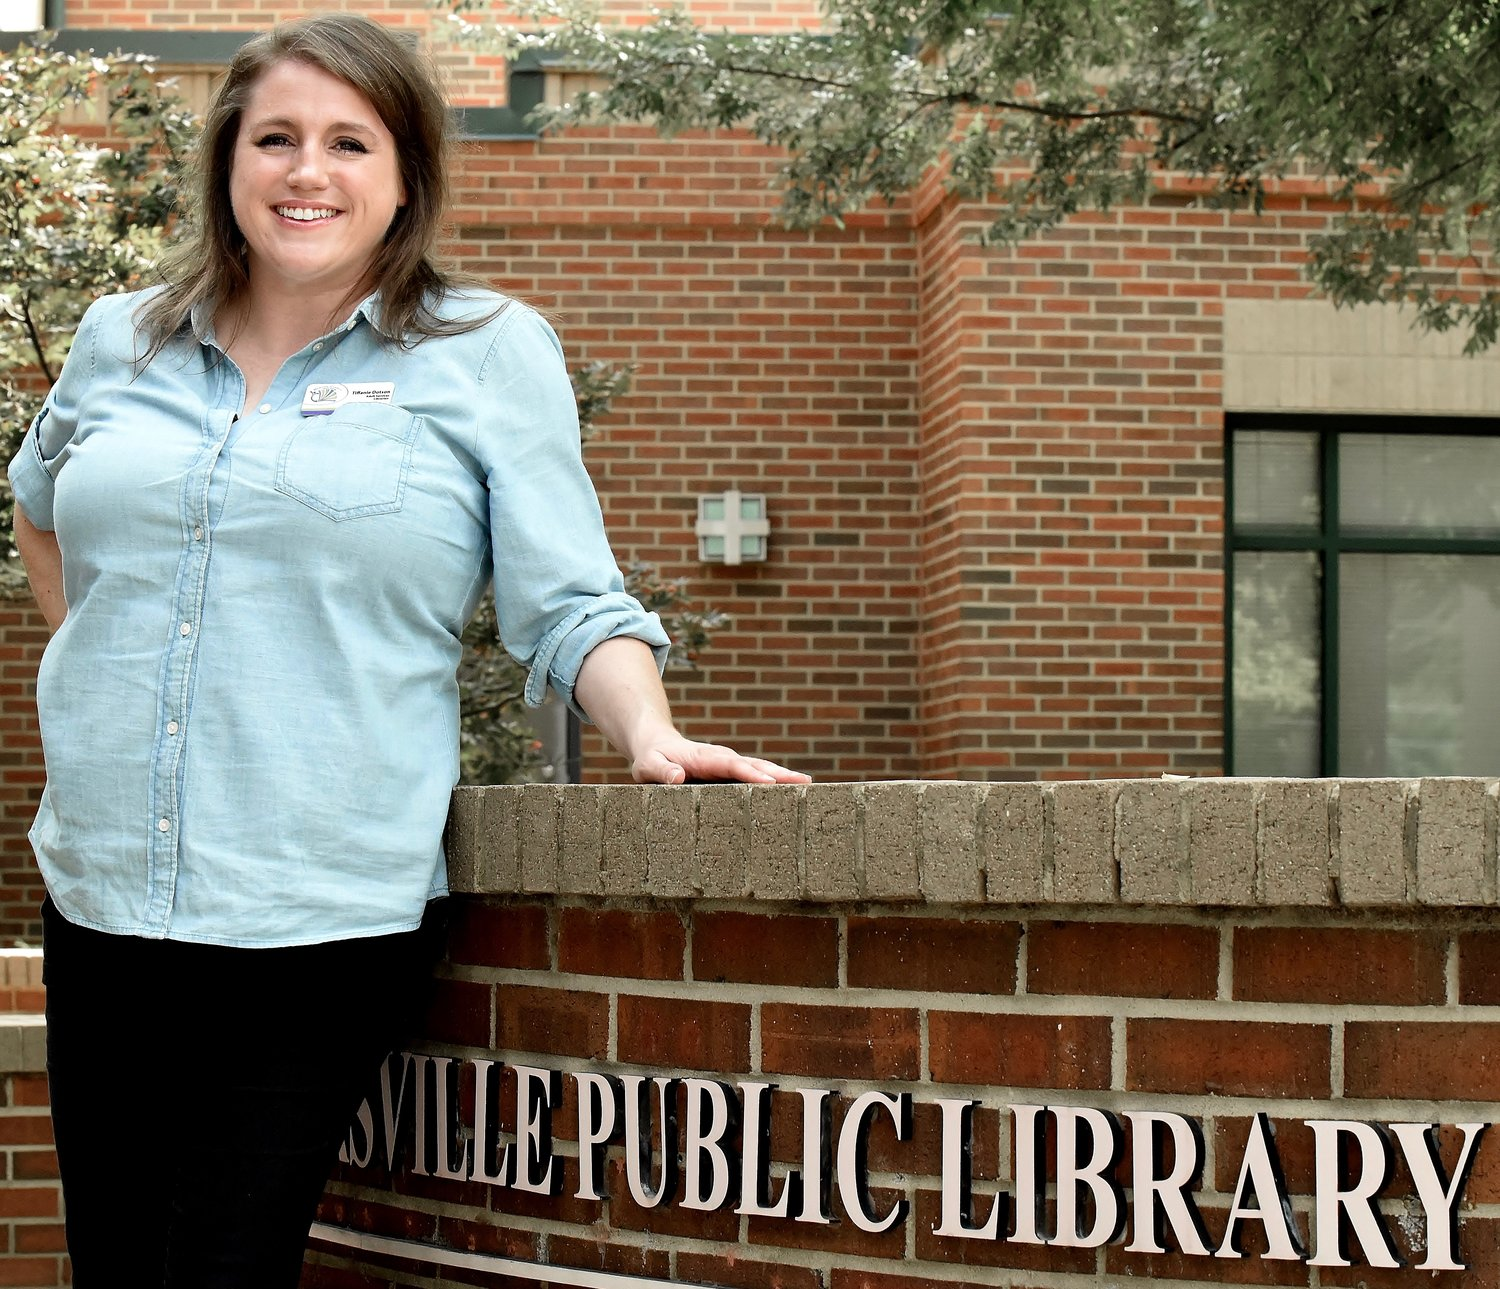 Tiffanie Dotson is the Adult services librarian at the Cartersville Public Library.